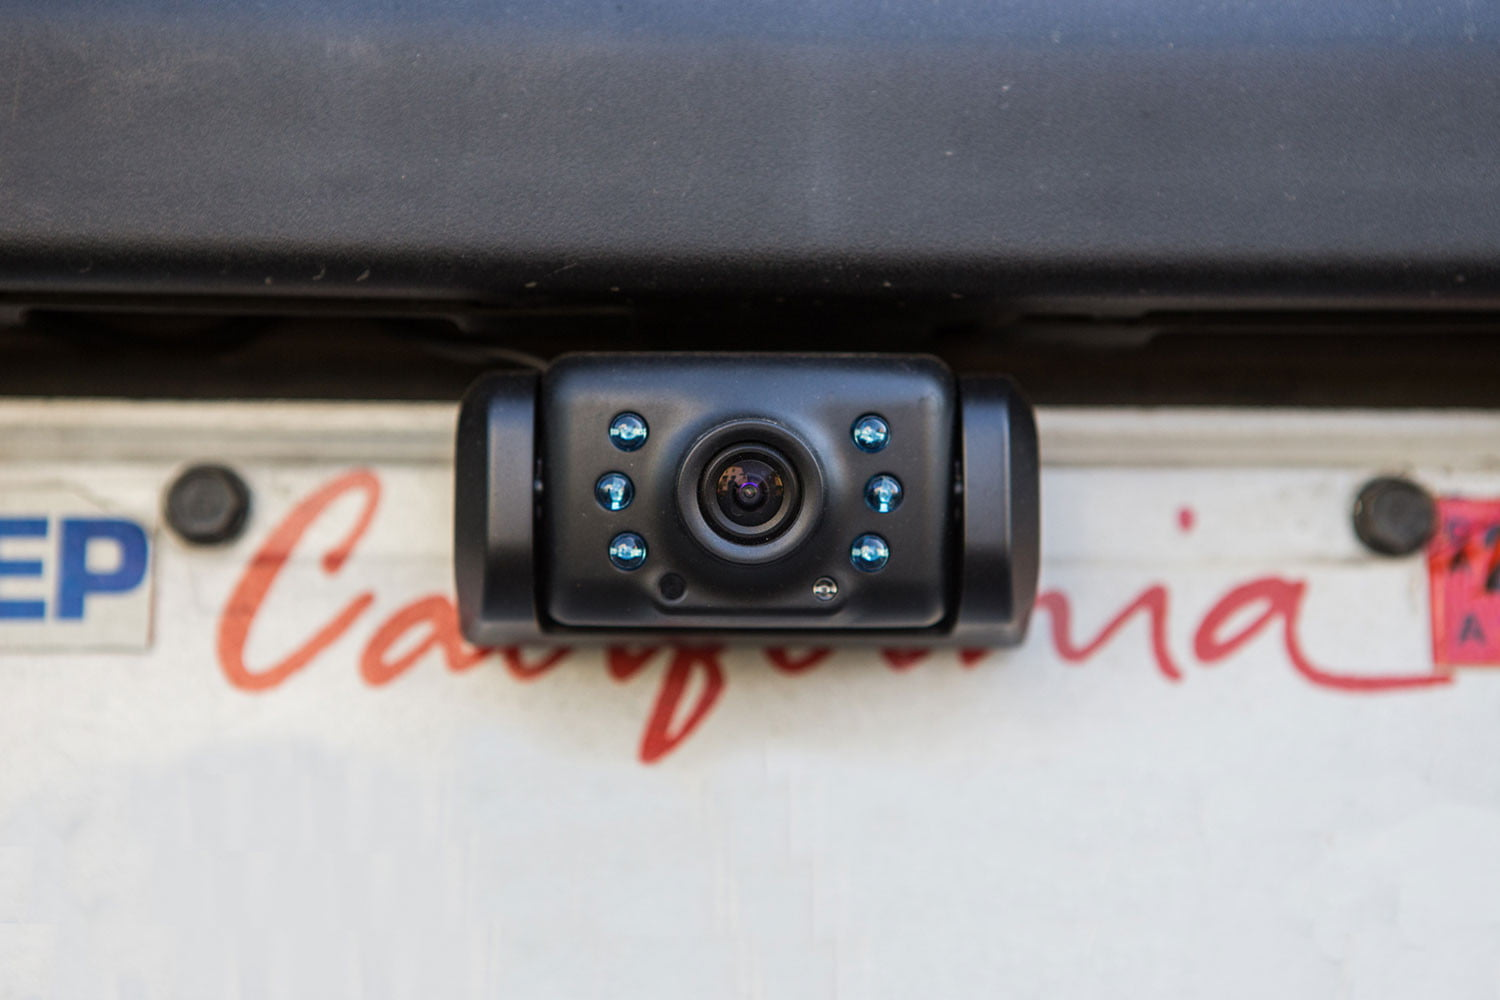 yada wireless backup camera with 5 dash monitor review digital trends rh digitaltrends com Yada Backup Camera Costco yada backup camera wireless 5 monitor